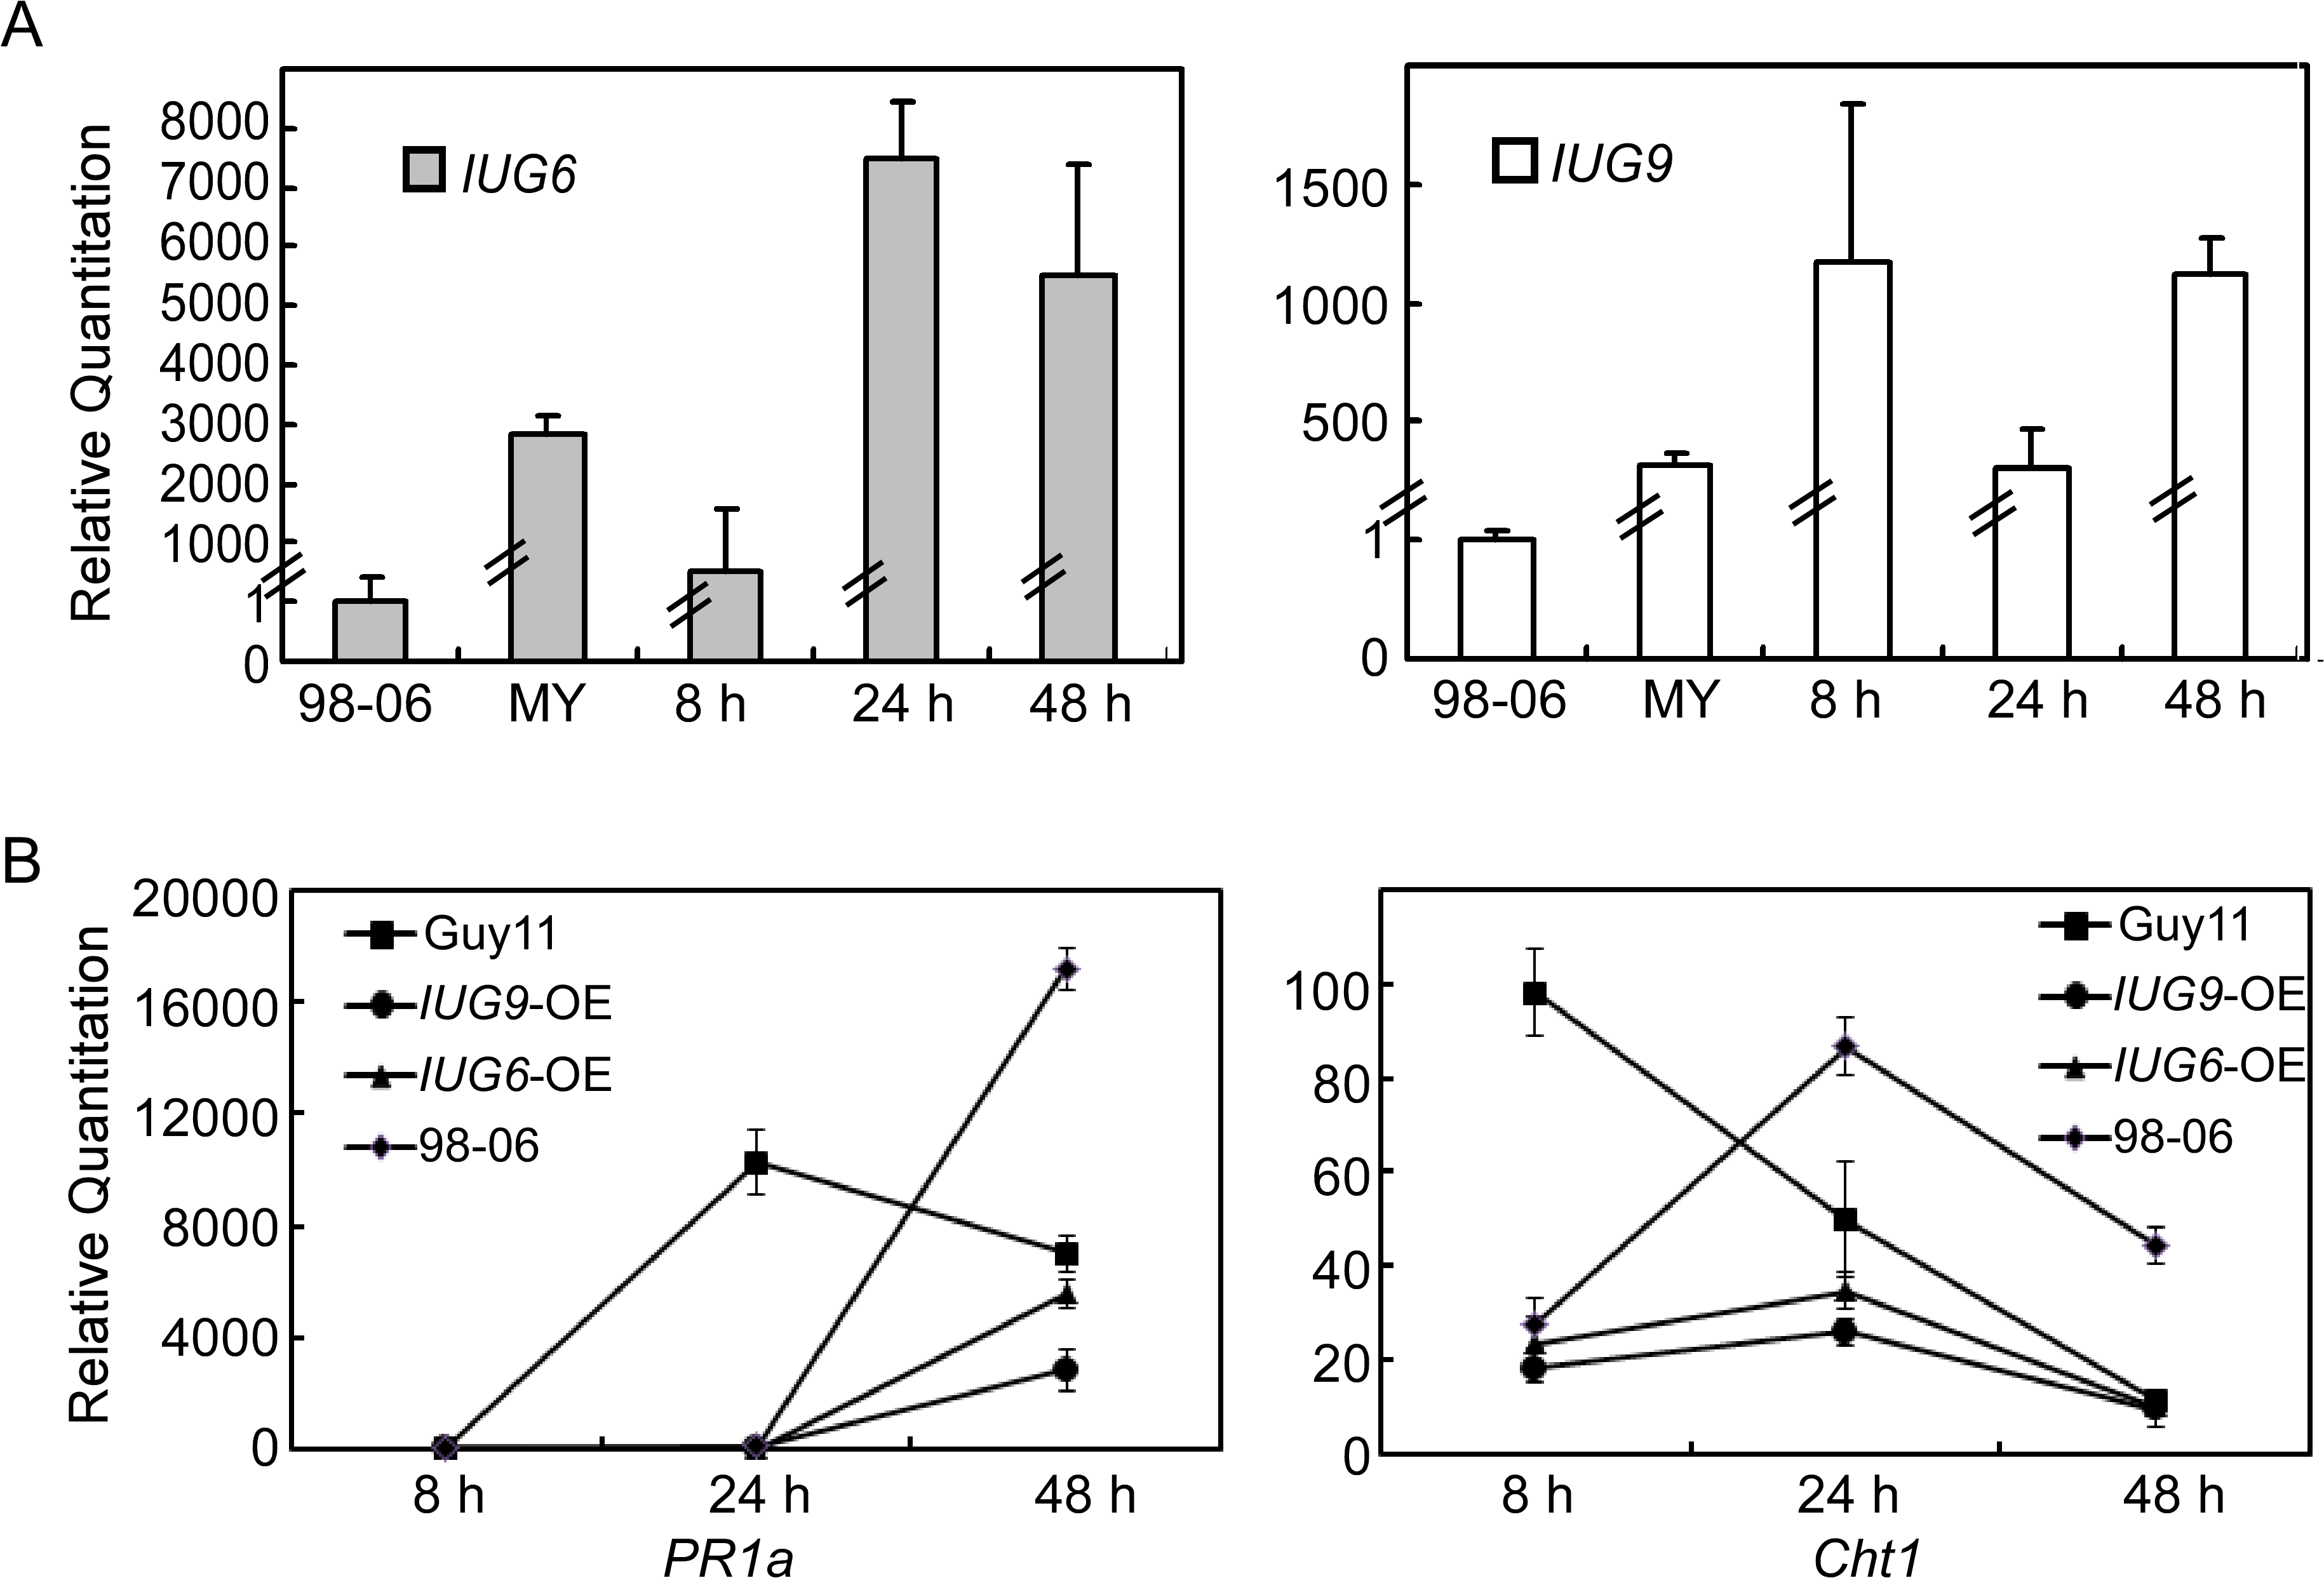 Over-expression of <i>IUG6</i> or <i>IUG9</i> in Guy11 suppresses defense-related genes in rice.